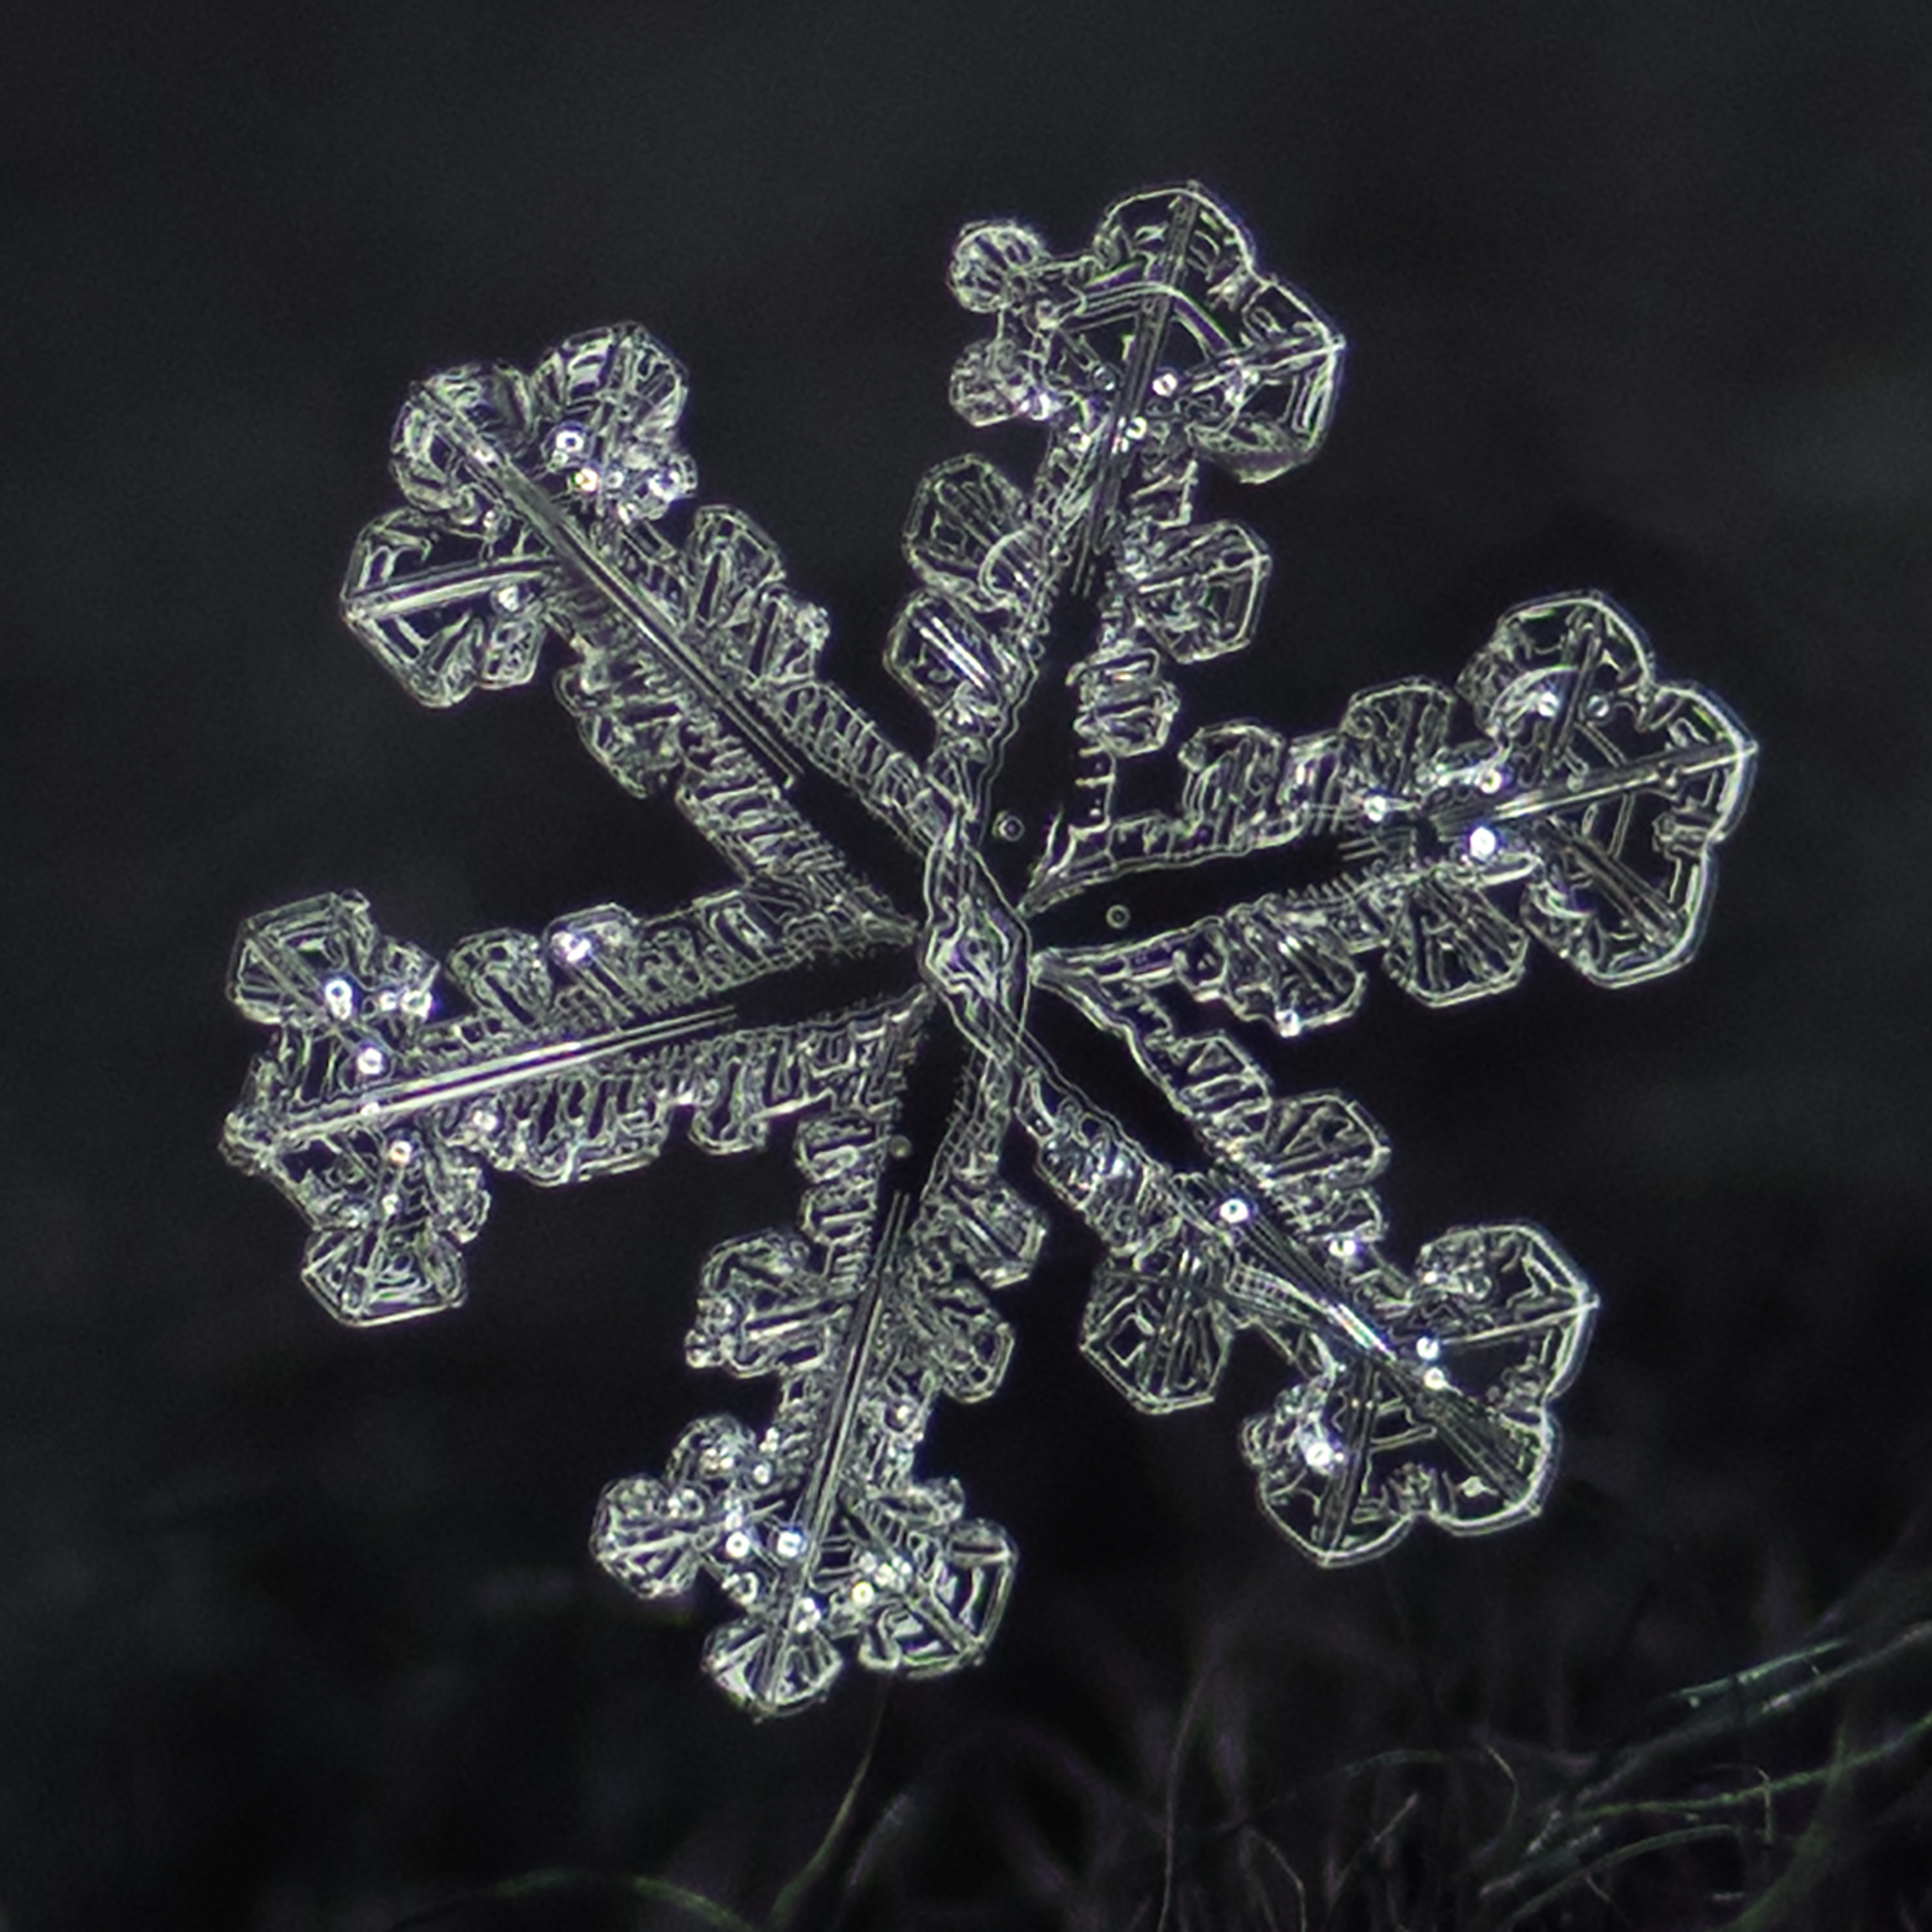 snowflake photography sample-7.jpg